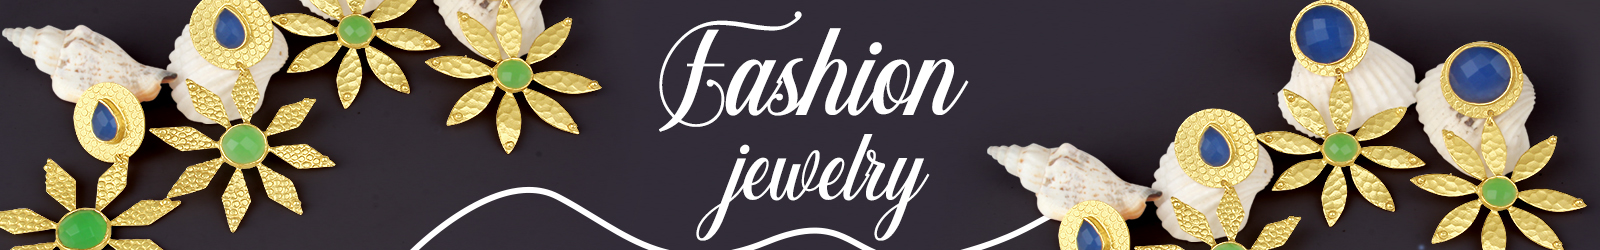 Online Fashion Jewelry Shop  Fashion Jewelry Manufacturer in India